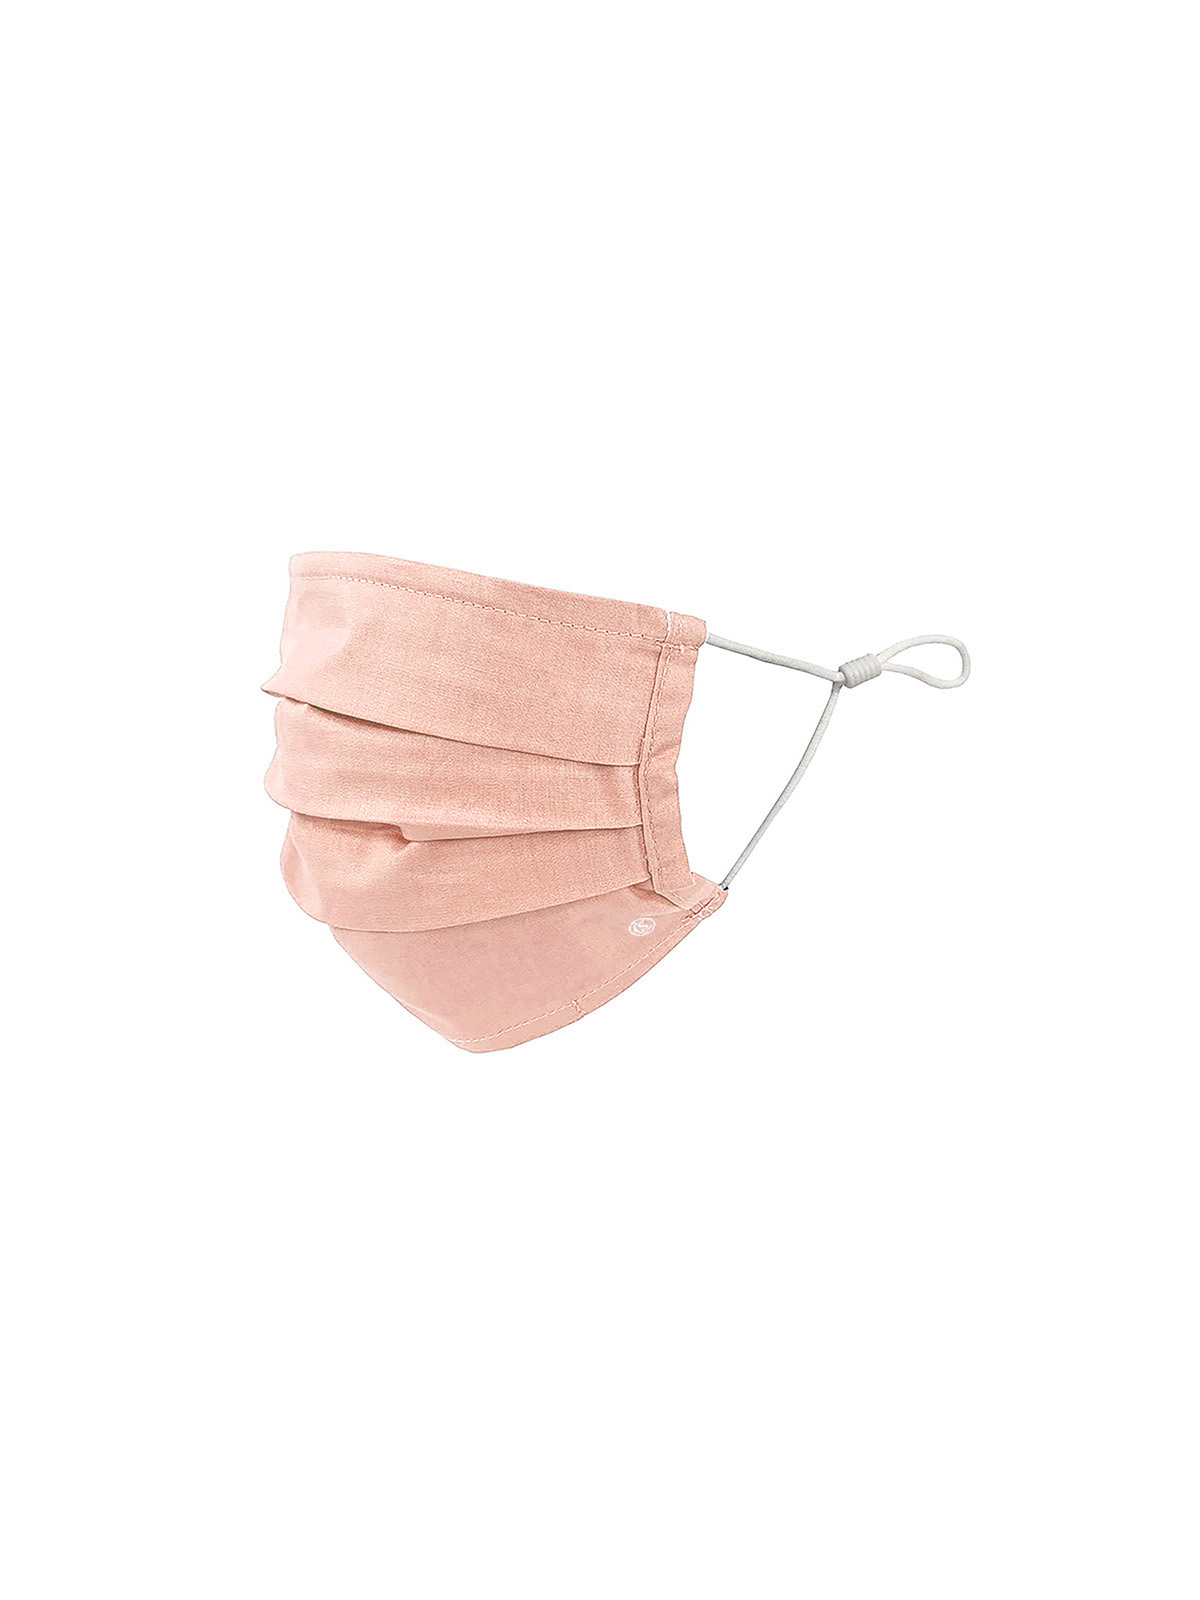 ROSE PRINT PLEATED MASK 6-PACK